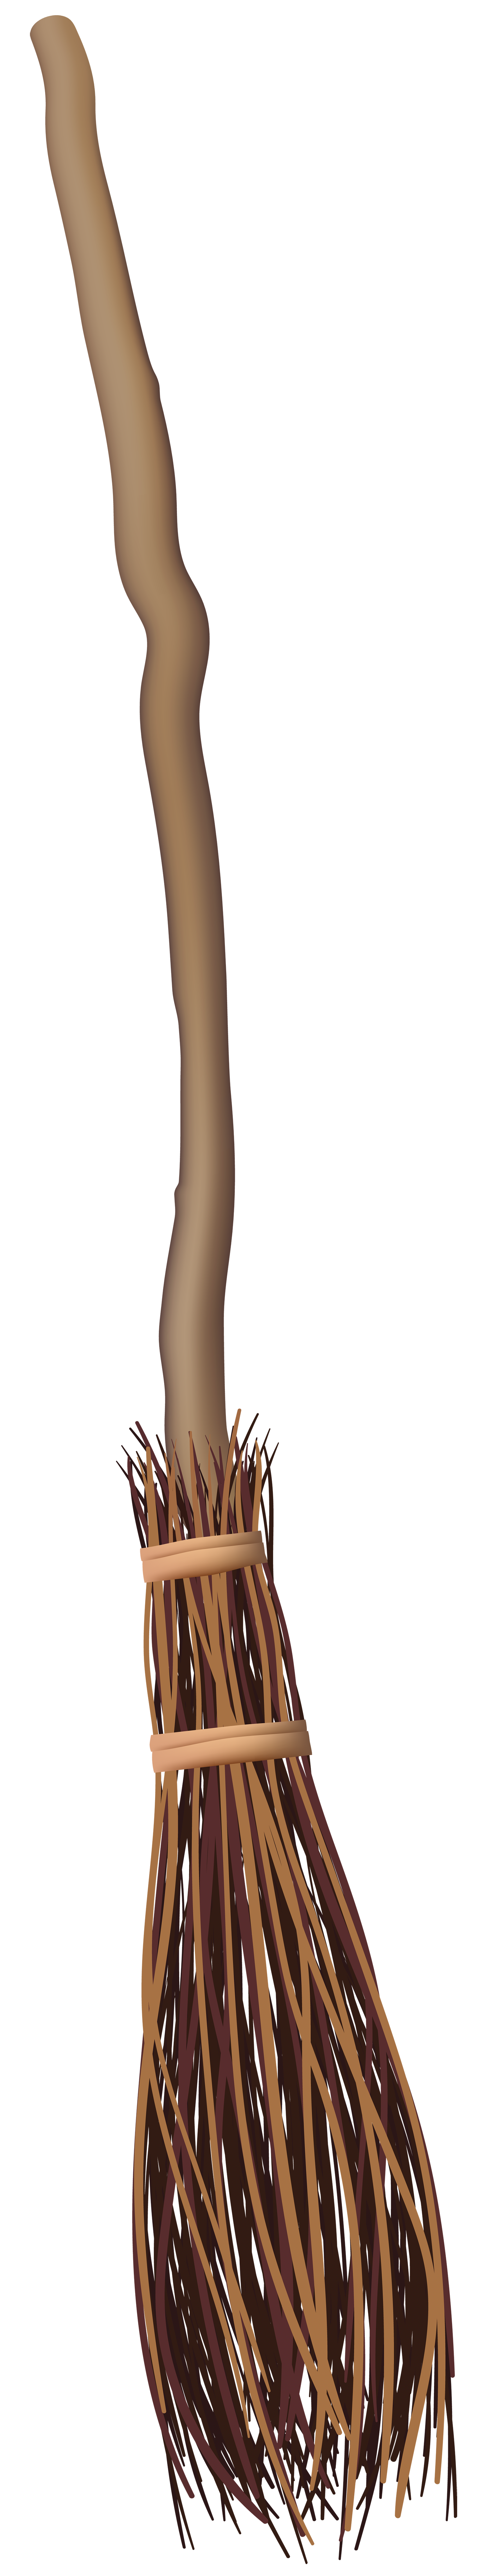 Witch broom png